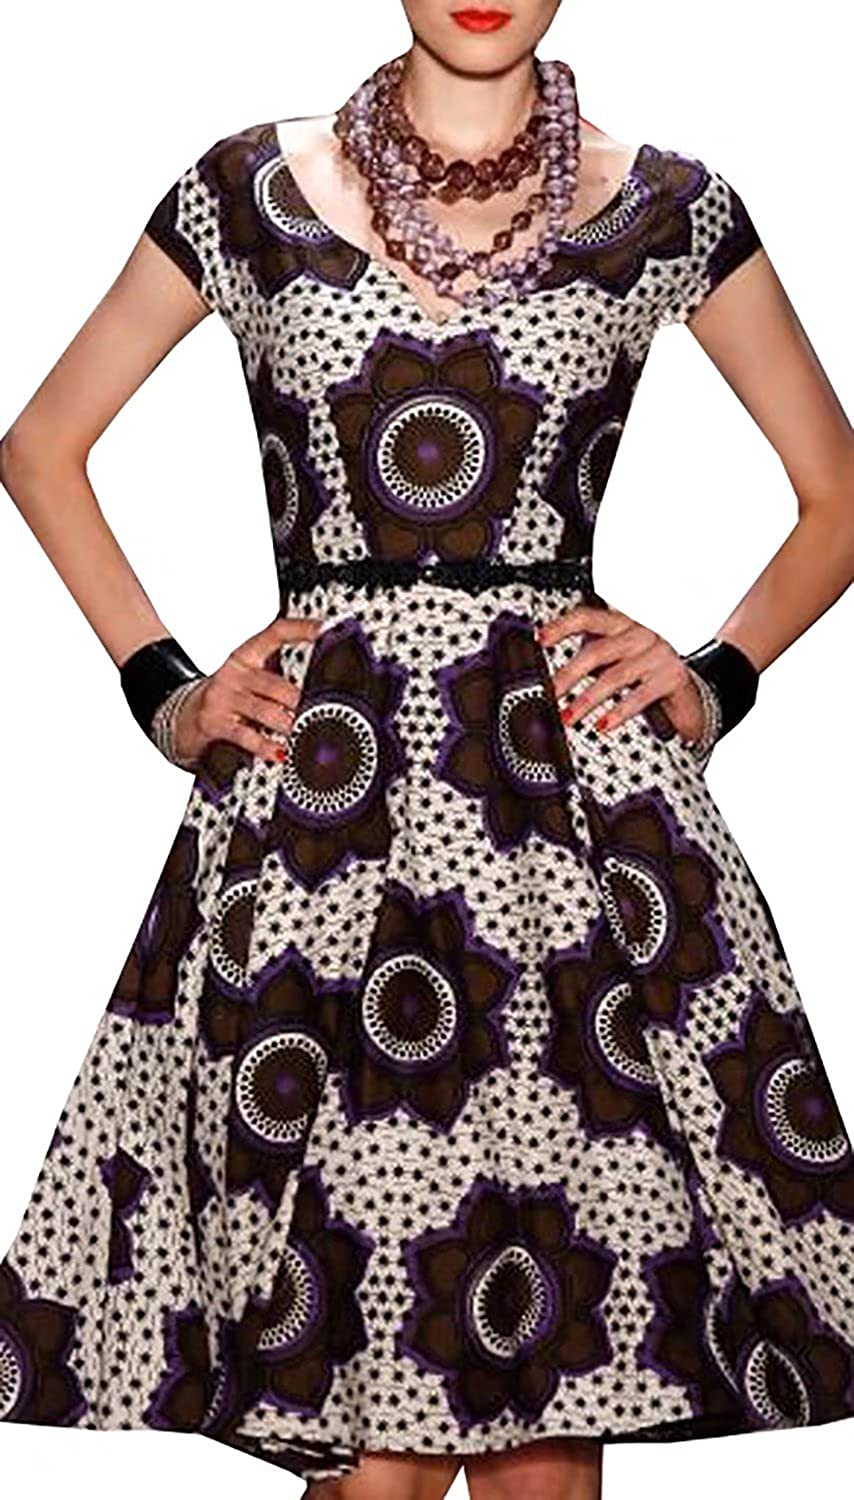 Dellytop Women Cap Sleeve African Print Dashiki Style Floral Party Dress 3Y1230